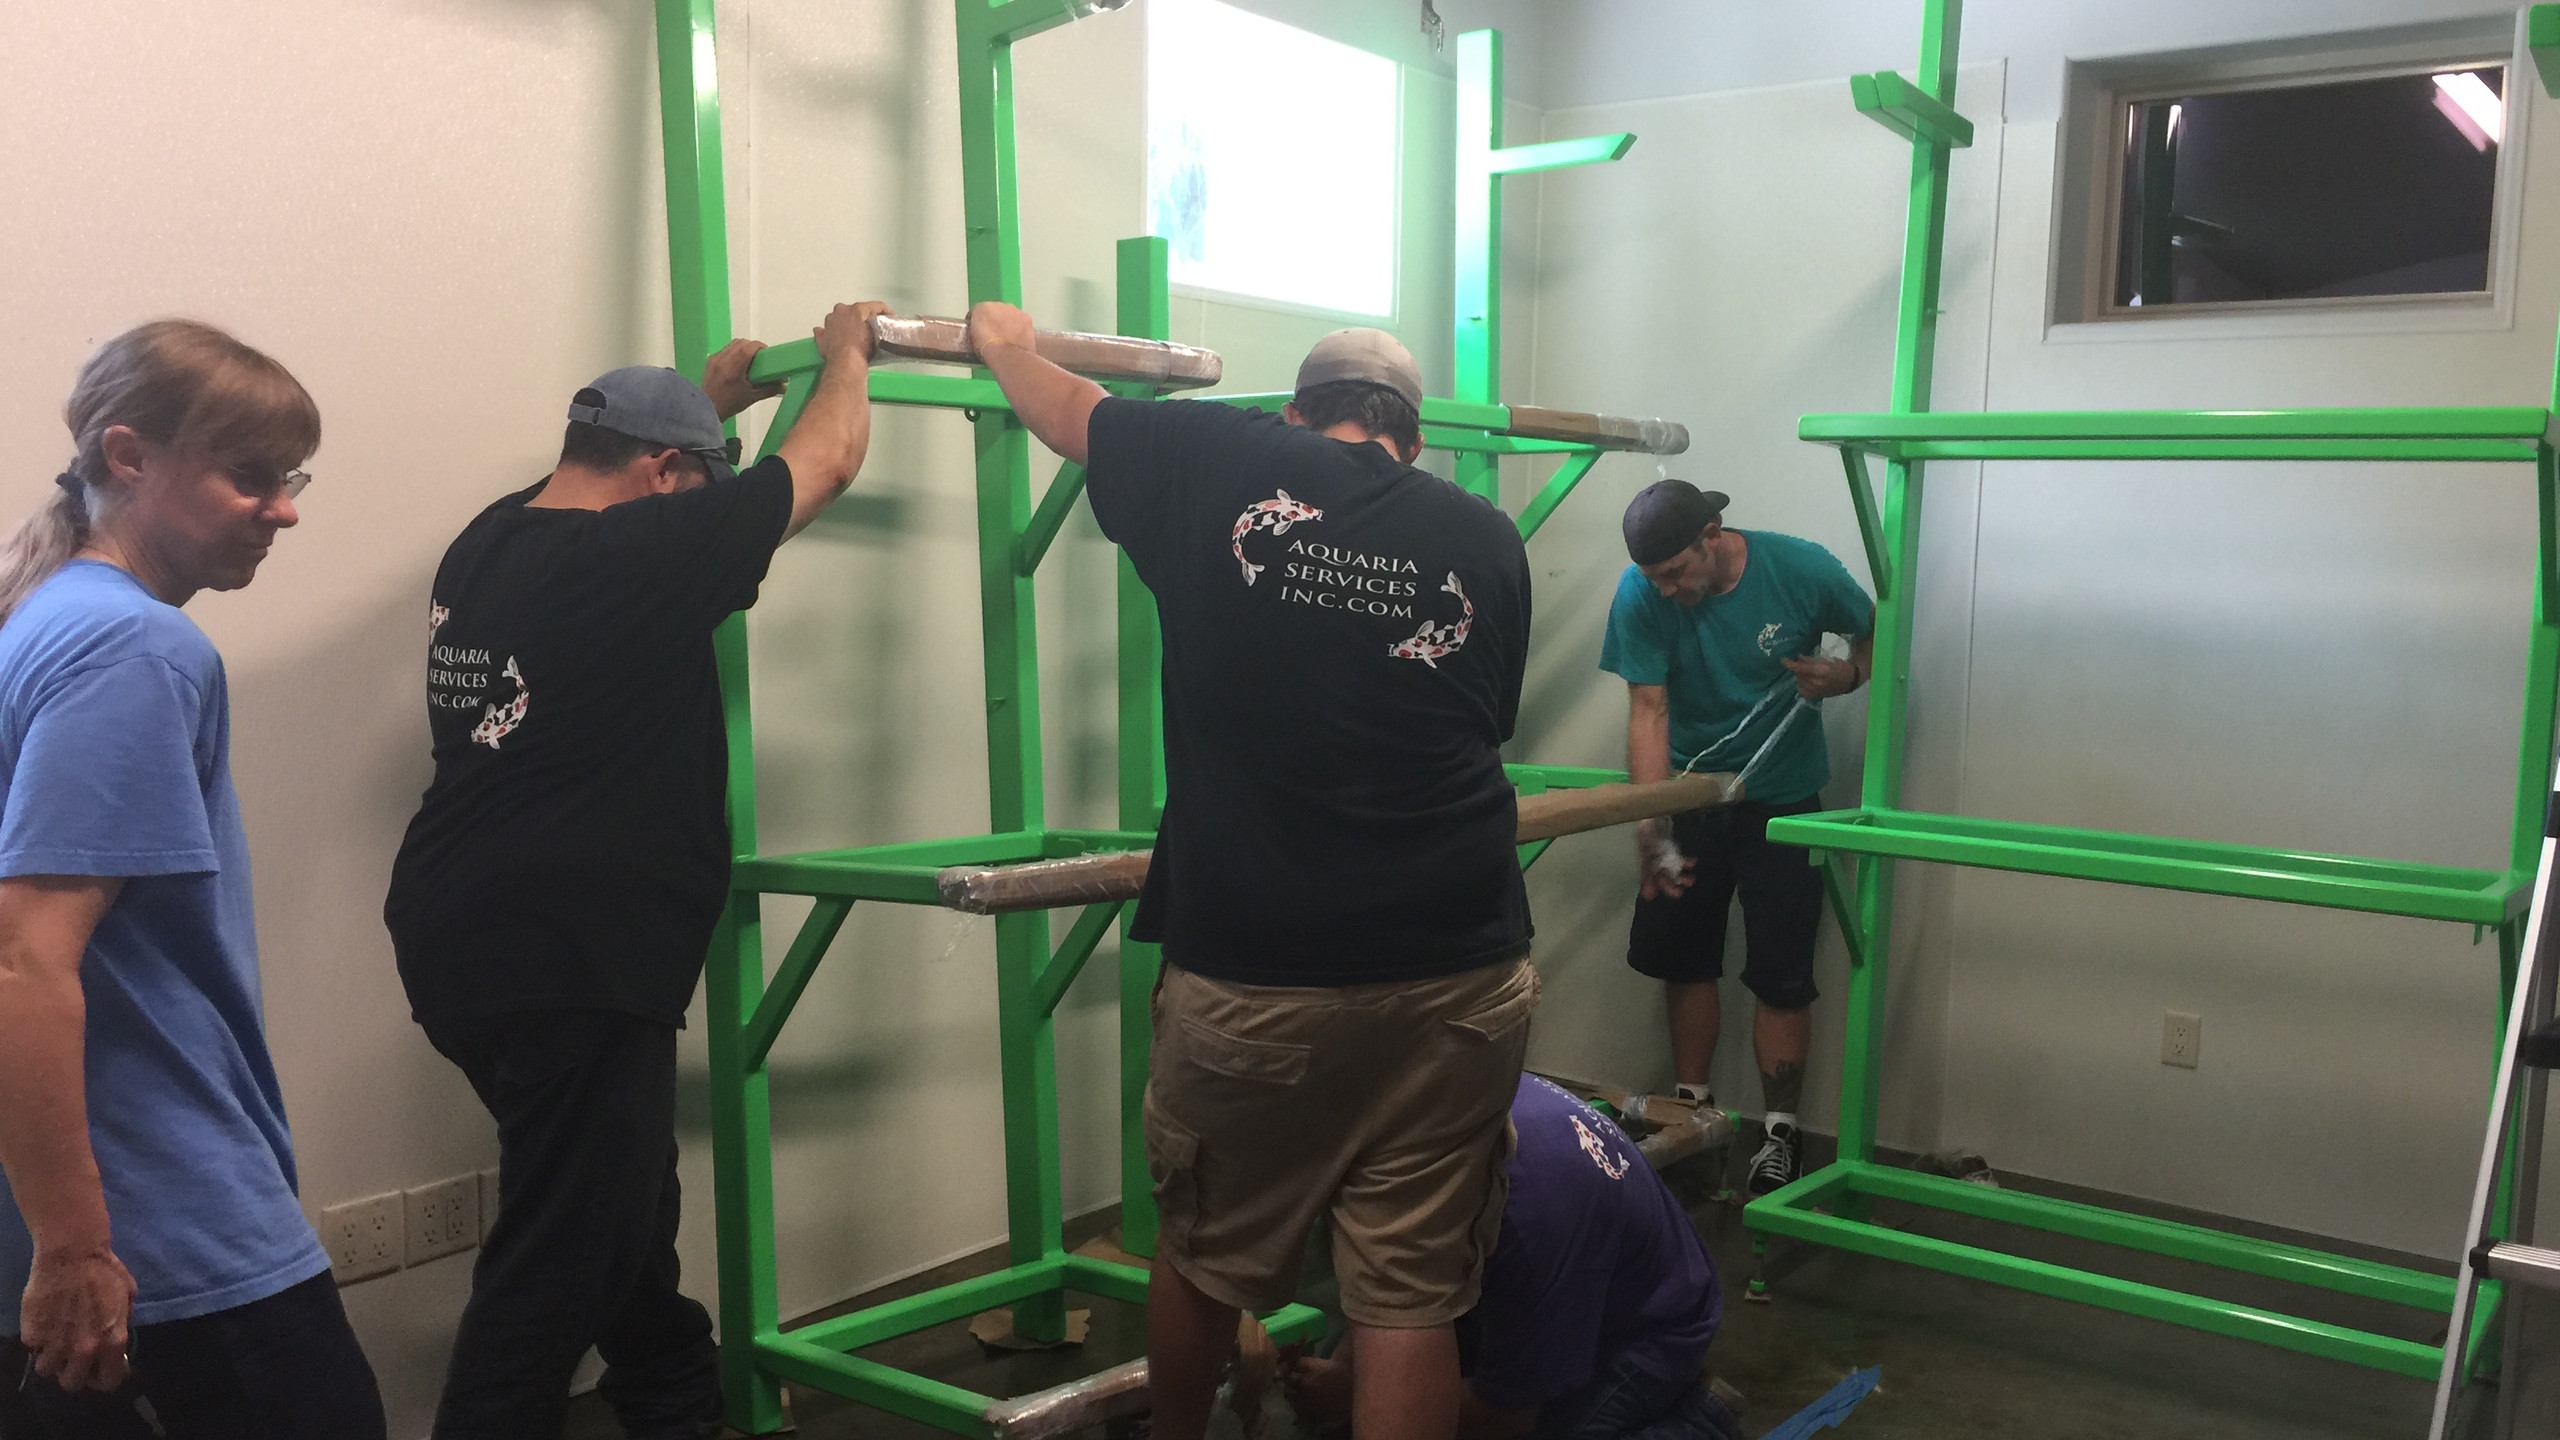 4-Moving the Rack System